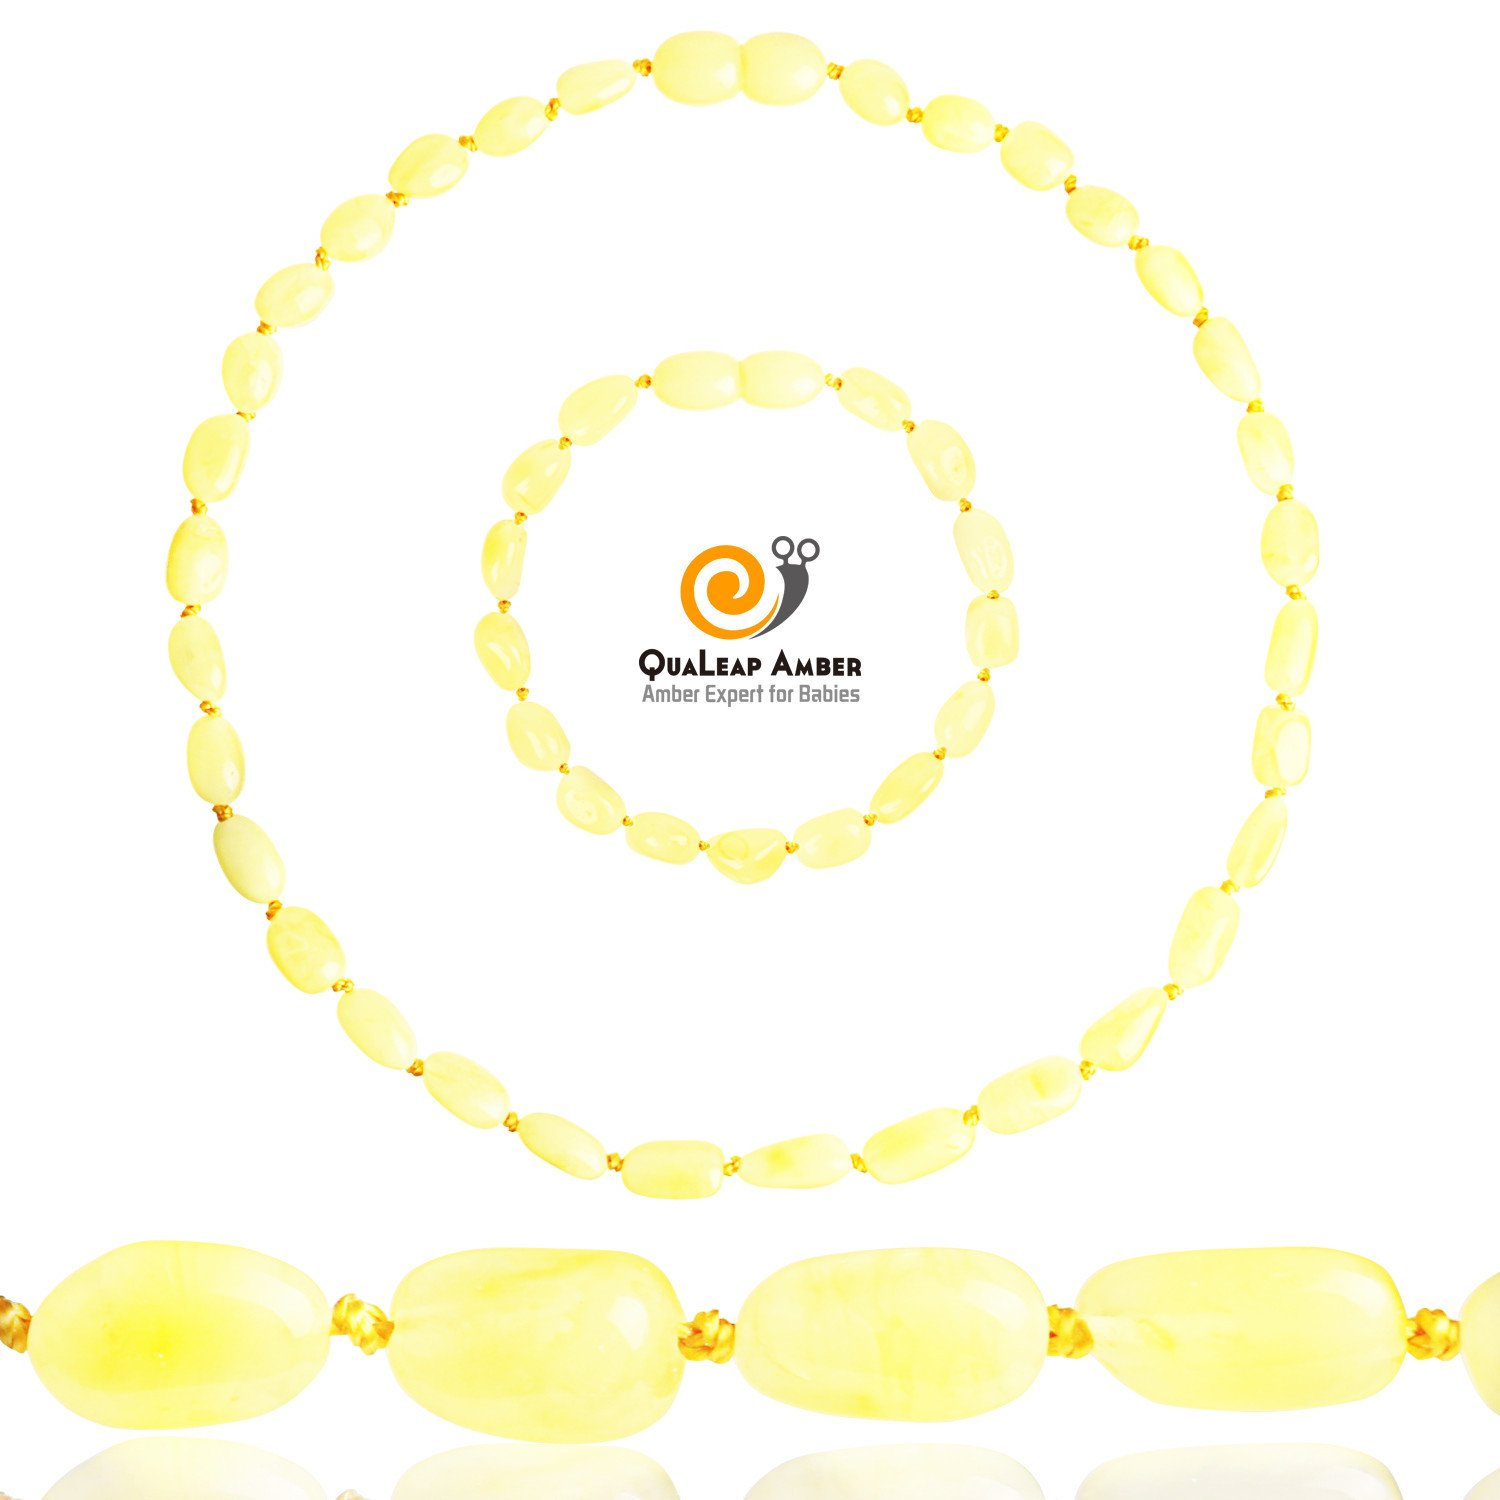 Baltic Amber Teething Necklace + Amber Teething Bracelet Set for Baby, 100% Authentic Amber Necklace and Amber Teething Anklet for Infant & Toddler (Unisex - Butter - 12.5 Inches / 5.5 Inches)